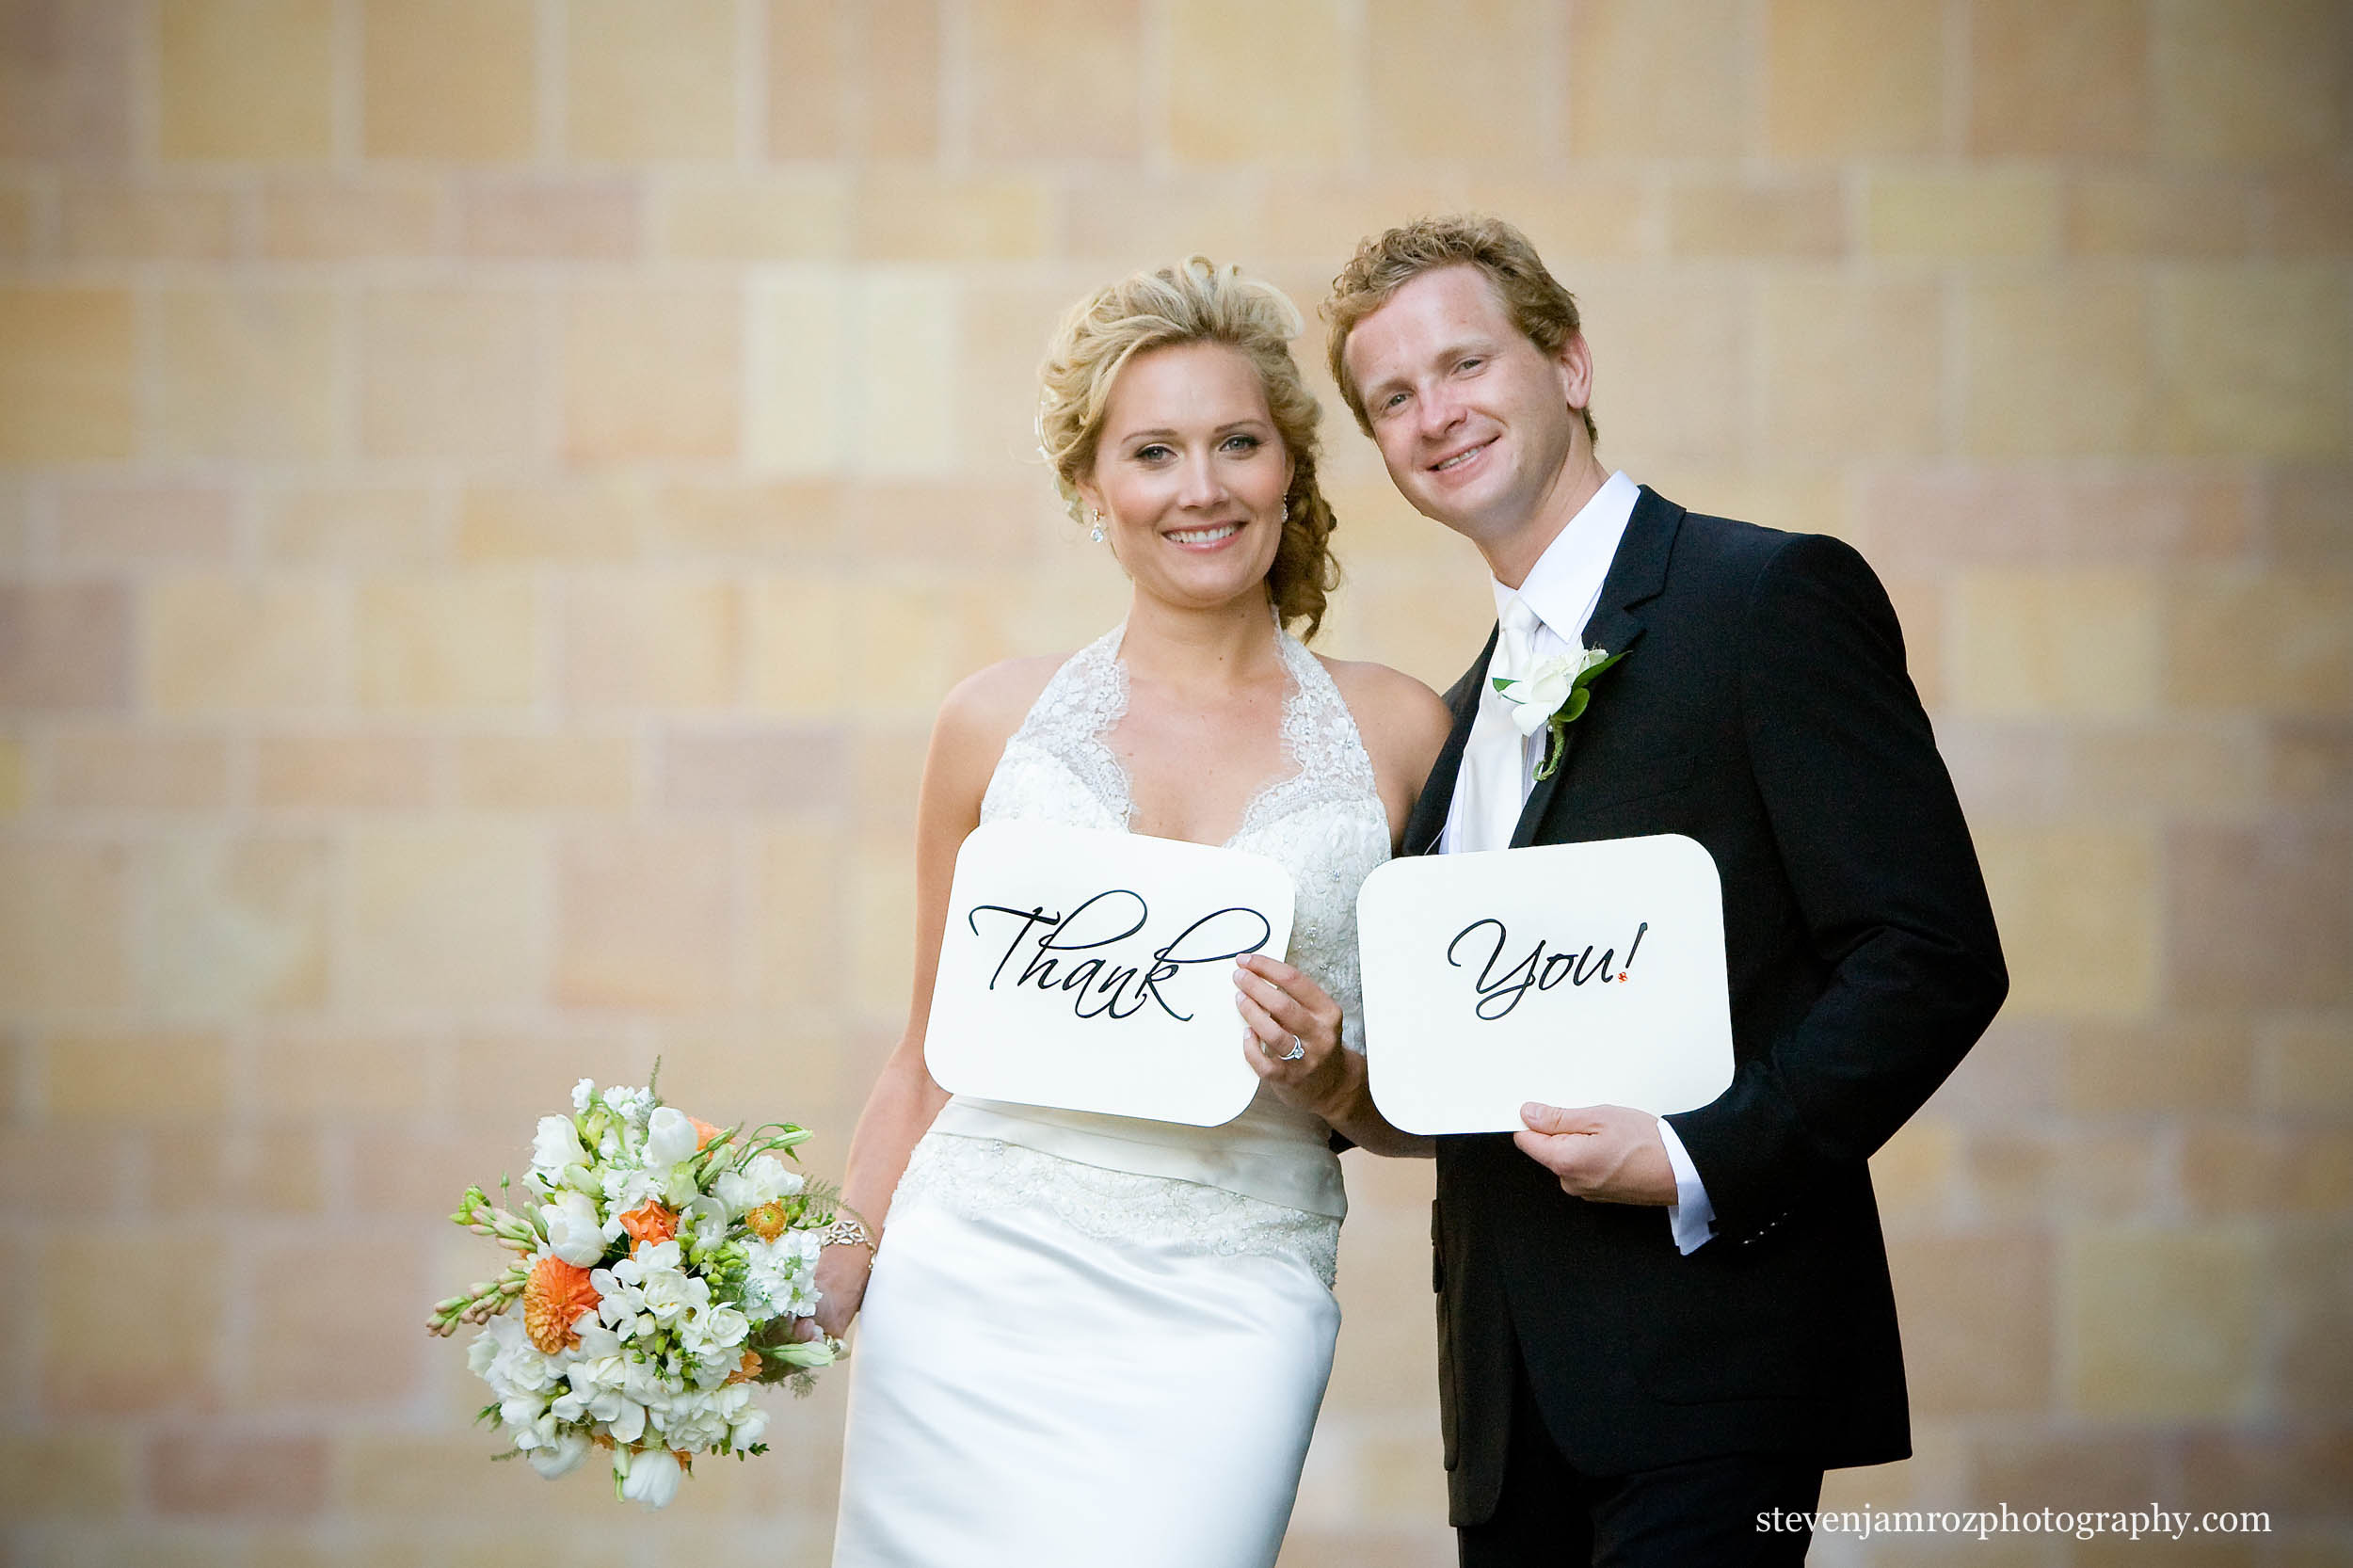 thank-you-sign-wedding-raleigh-steven-jamroz-photography-0268.jpg